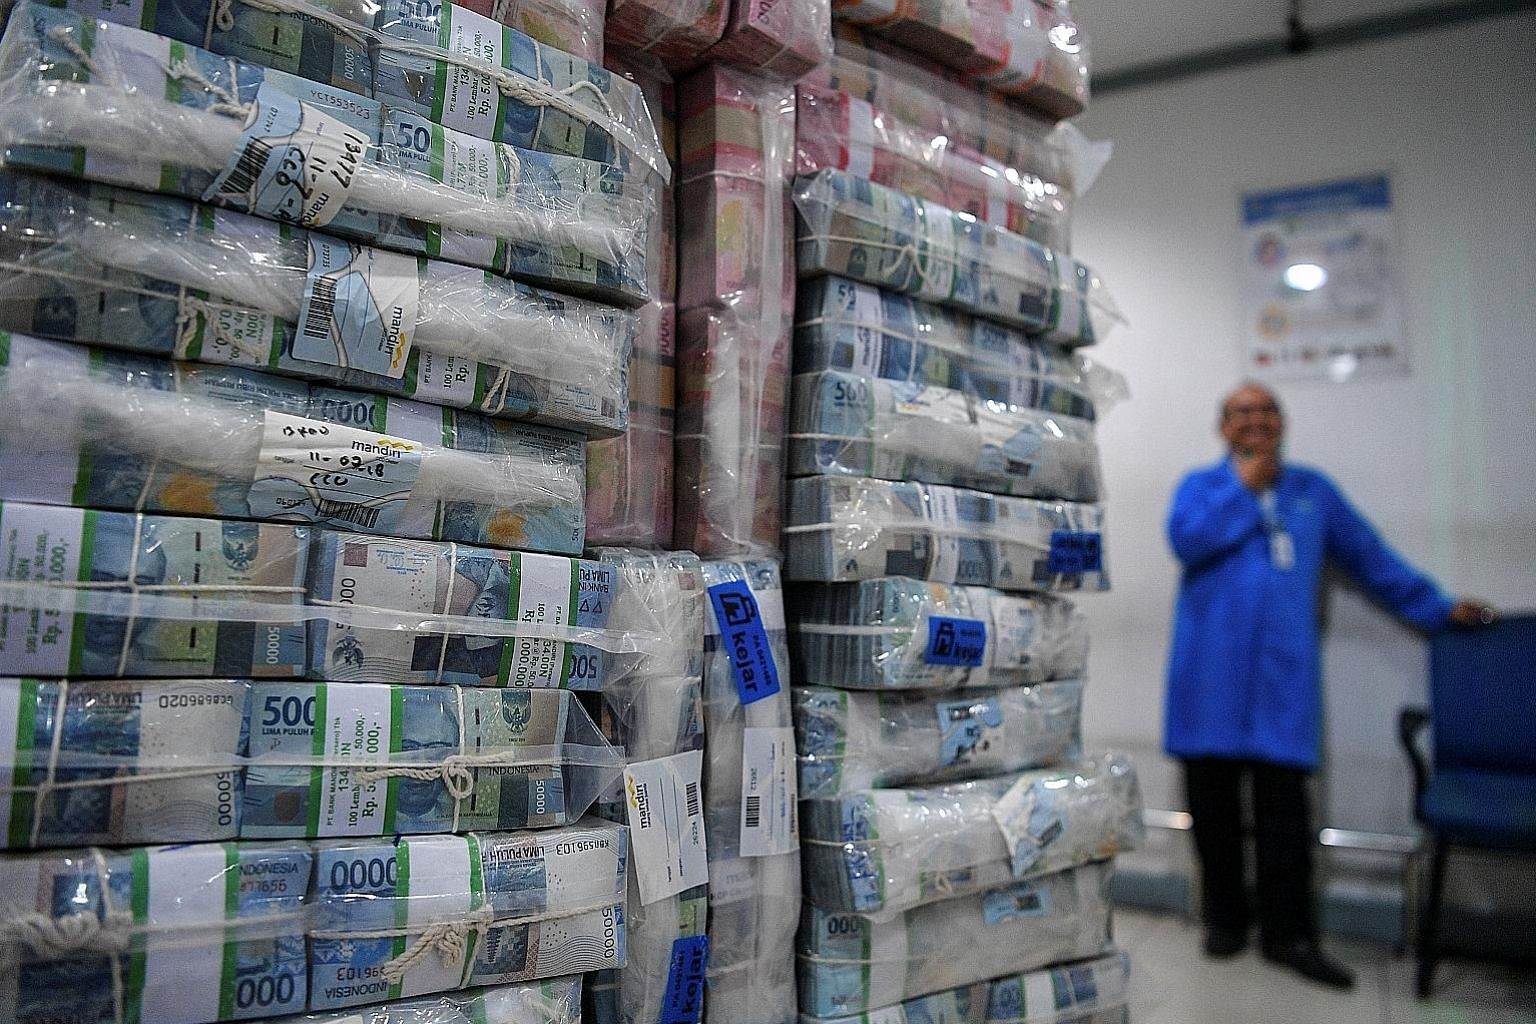 Stacks of Indonesian rupiah banknotes at Bank Mandiri's headquarters in Jakarta. The sharp drop in the currency - caused by a widening current account deficit and further weakened by US-China trade tensions - has prompted Indonesia to consider measur